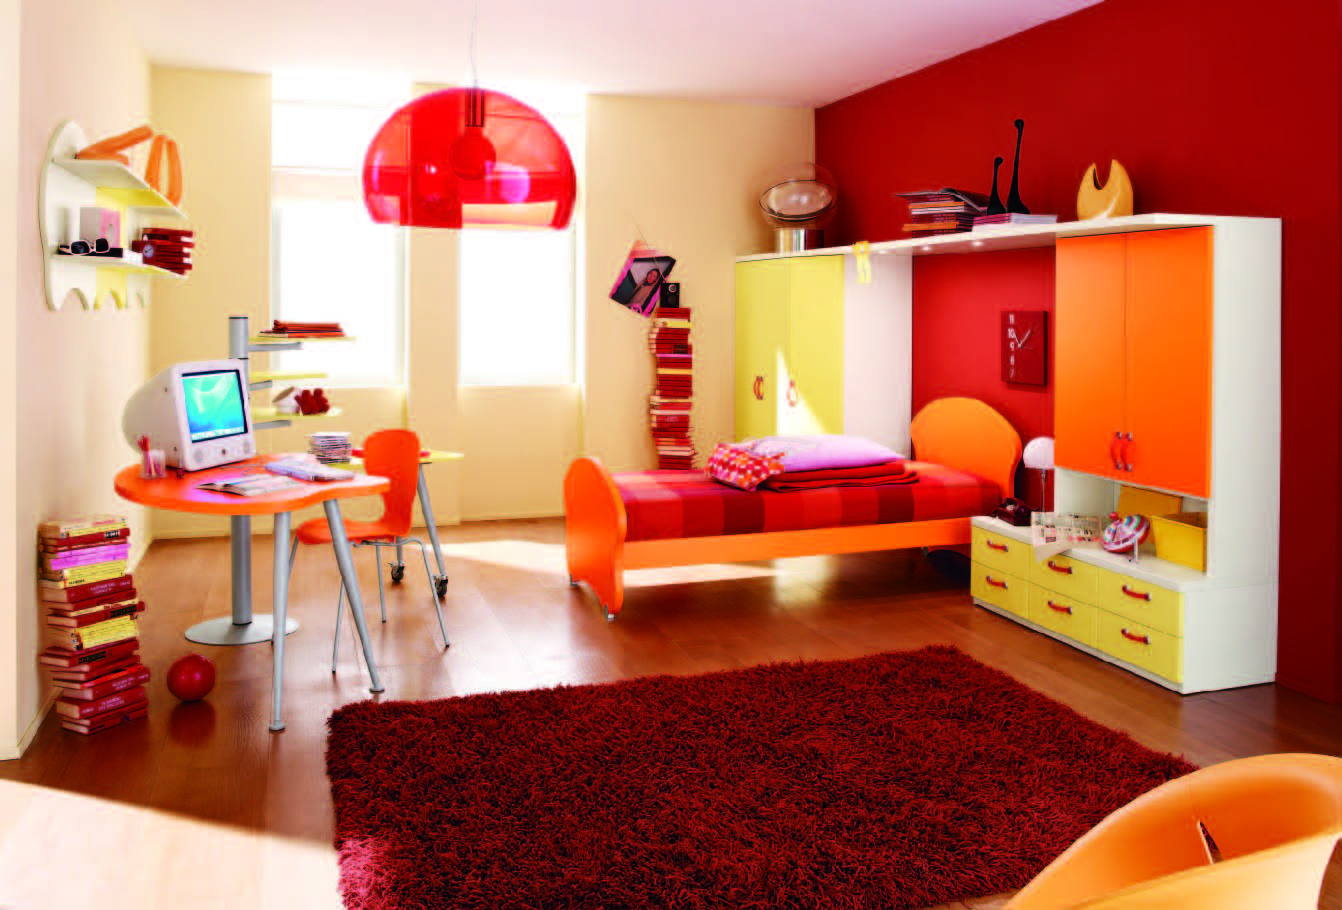 A Modern Design For Kid Bedroom Which Shows An Orange Single Bed Furniture  With Headboard And